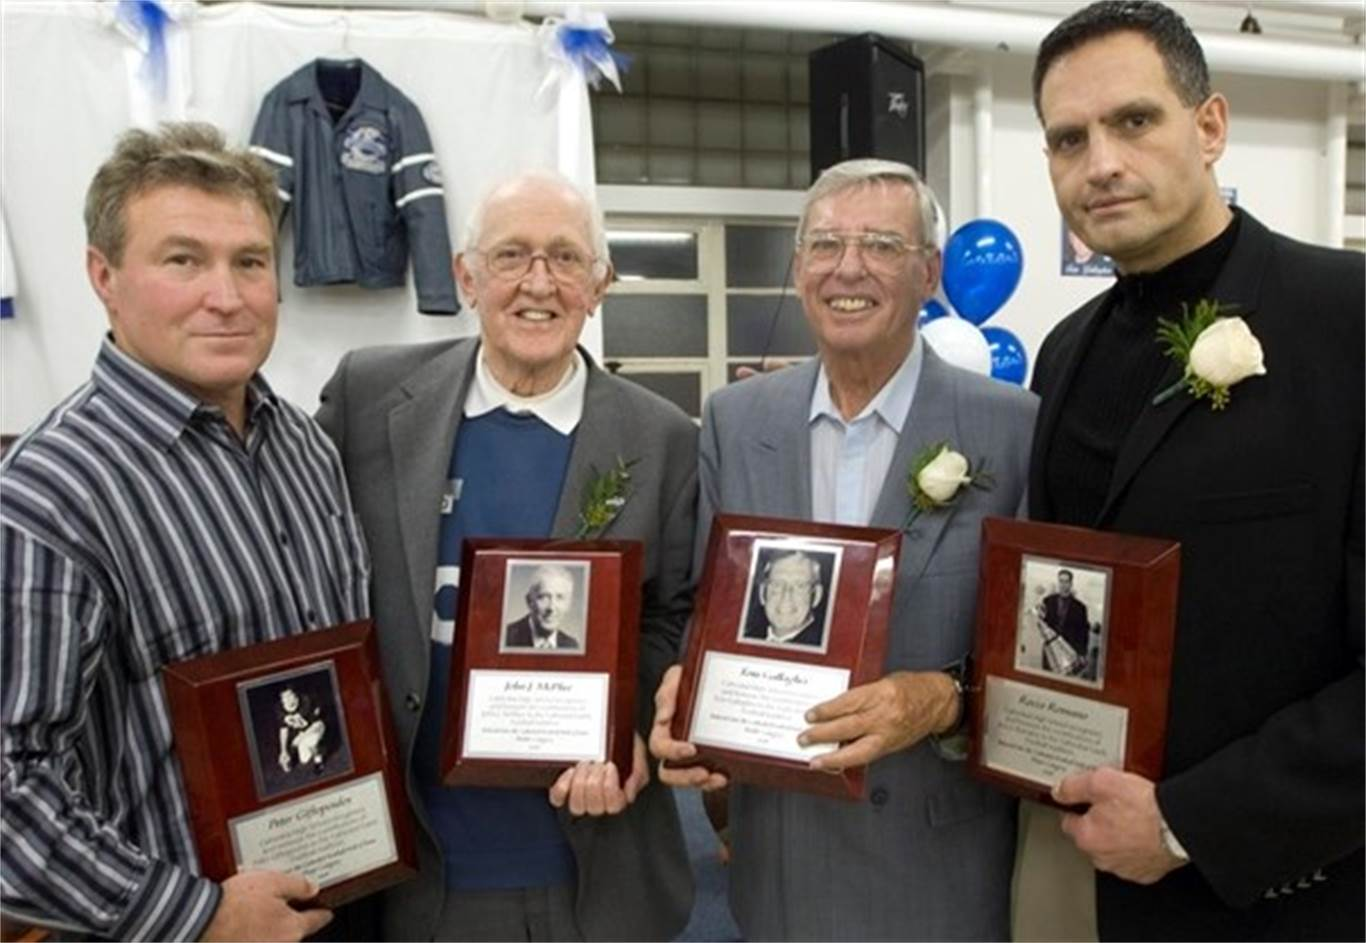 John McPhee was one of the first people that Cathedral High School inducted into its Gaels Hall of Fame in February 2008. Inducted were, from left, Steve Giftopoulos, accepting for his brother Peter, McPhee, Tom Gallagher and Rocco Romano. - Hamilton Spectator File Photo